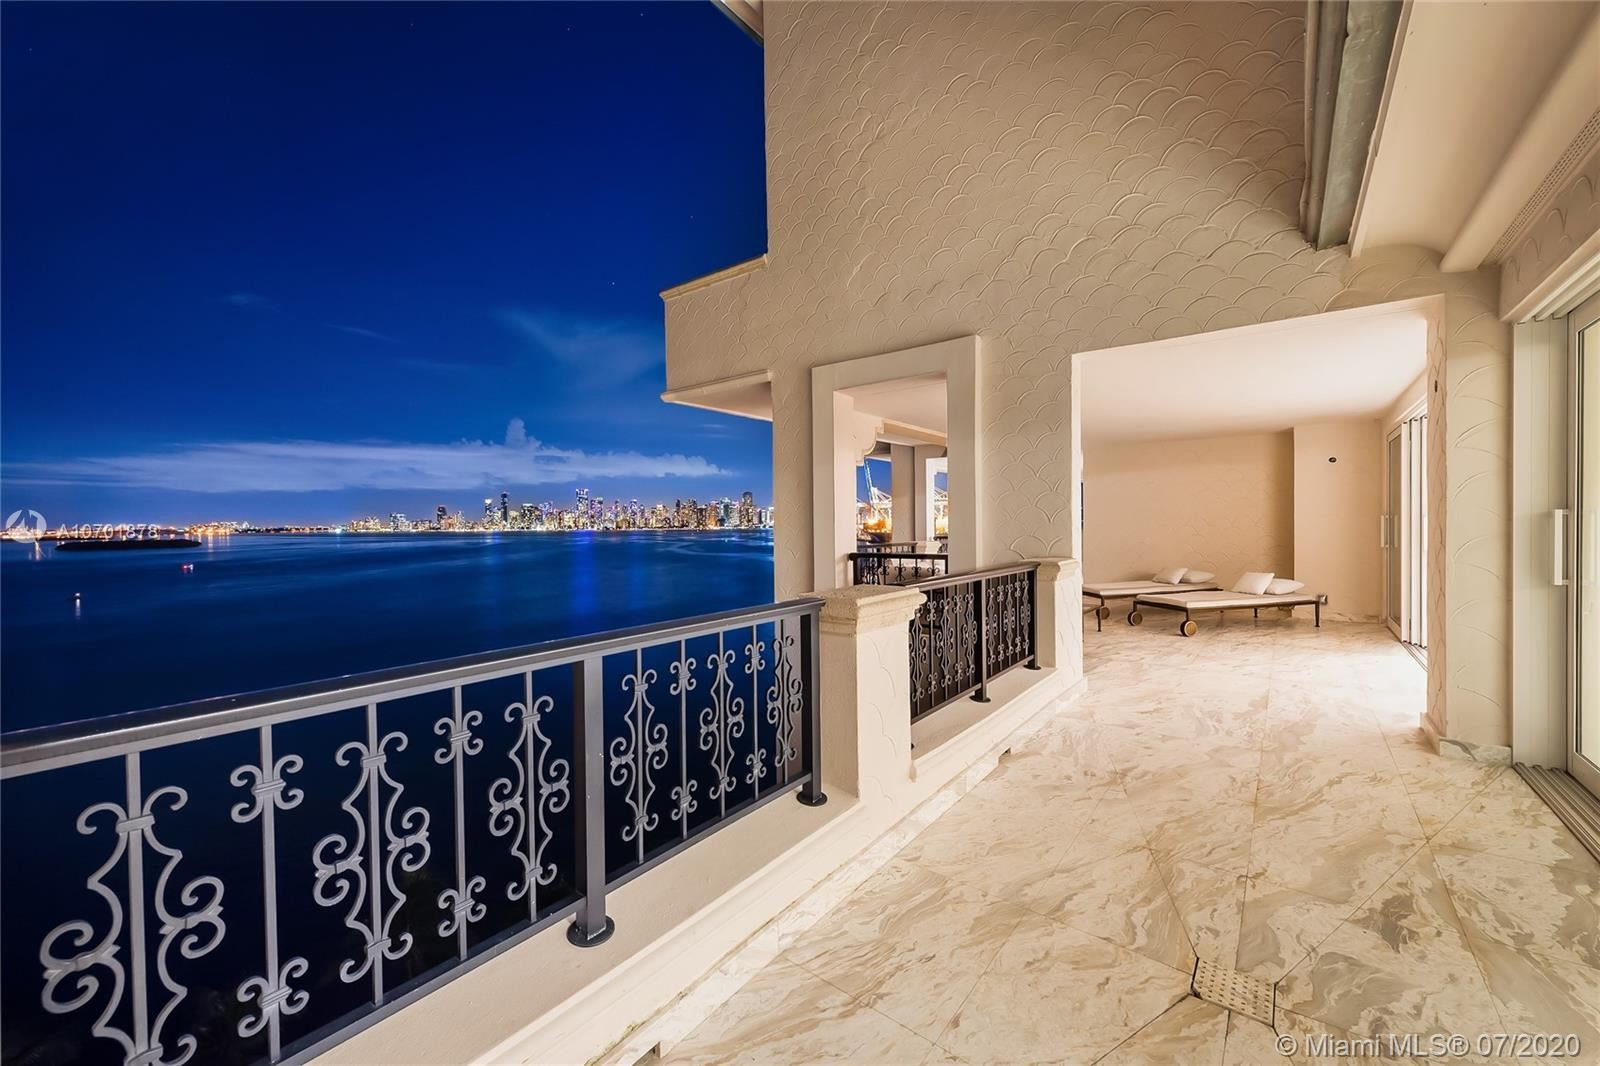 Photo 9 of Listing MLS a10701878 in 5292 Fisher Island Dr #5292 Miami FL 33109